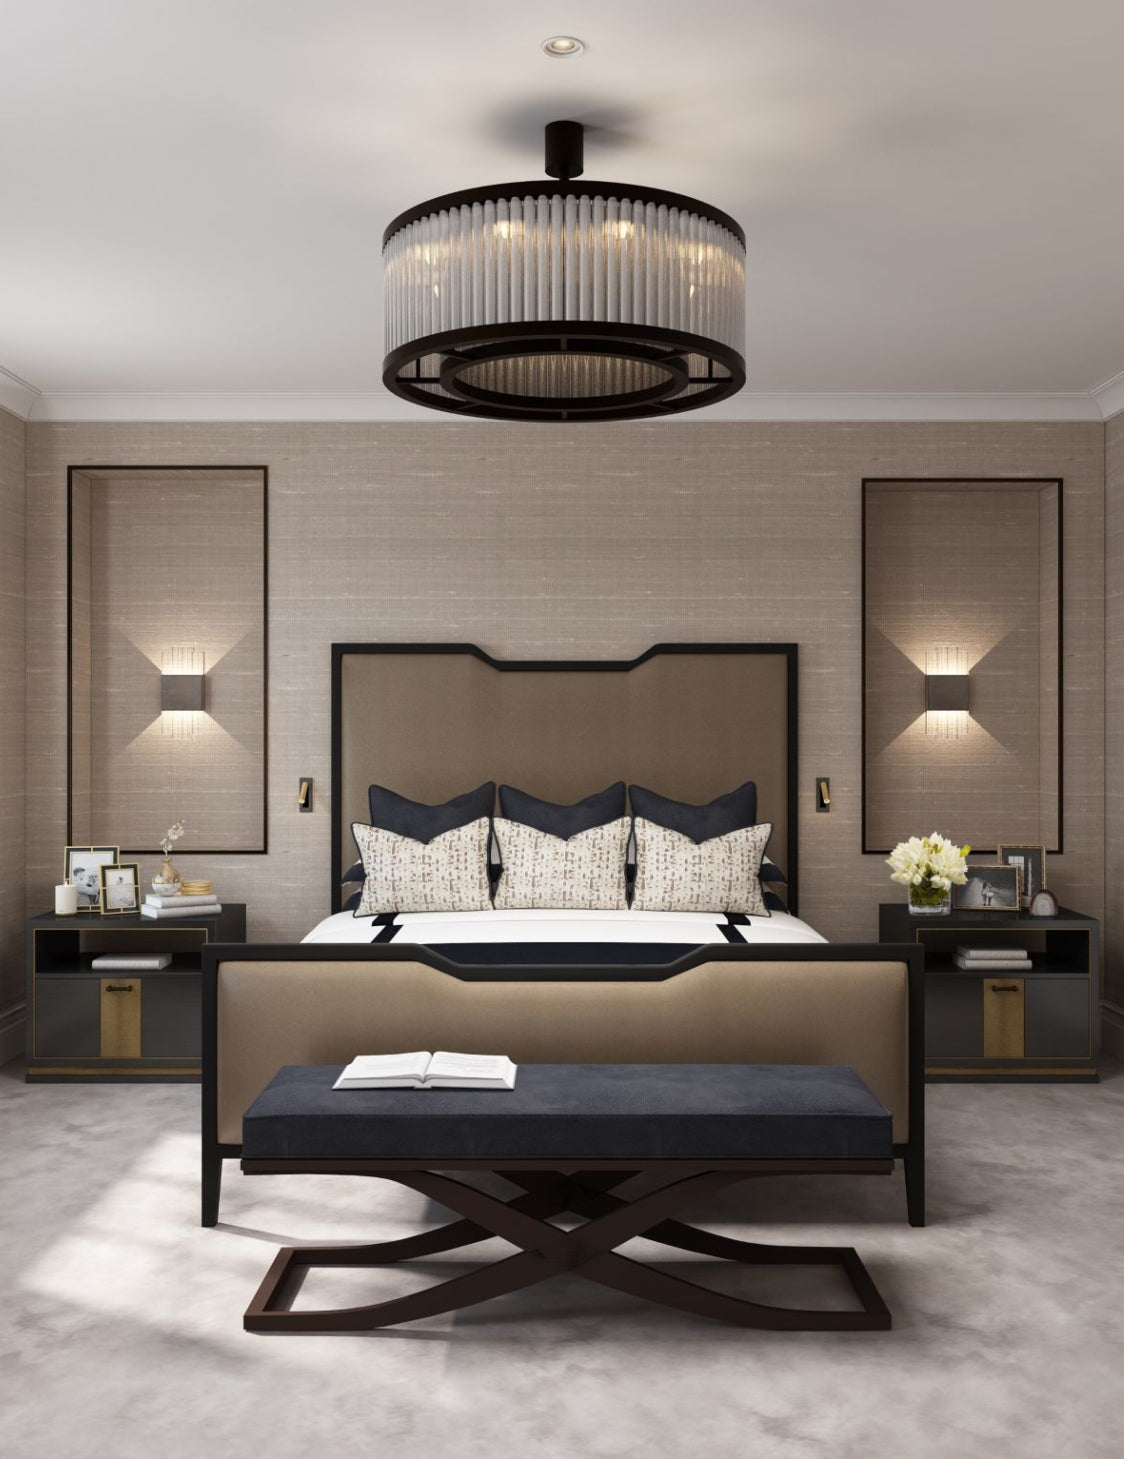 Luxury Interior Lighting Guide | Home Lighting | LuxDeco